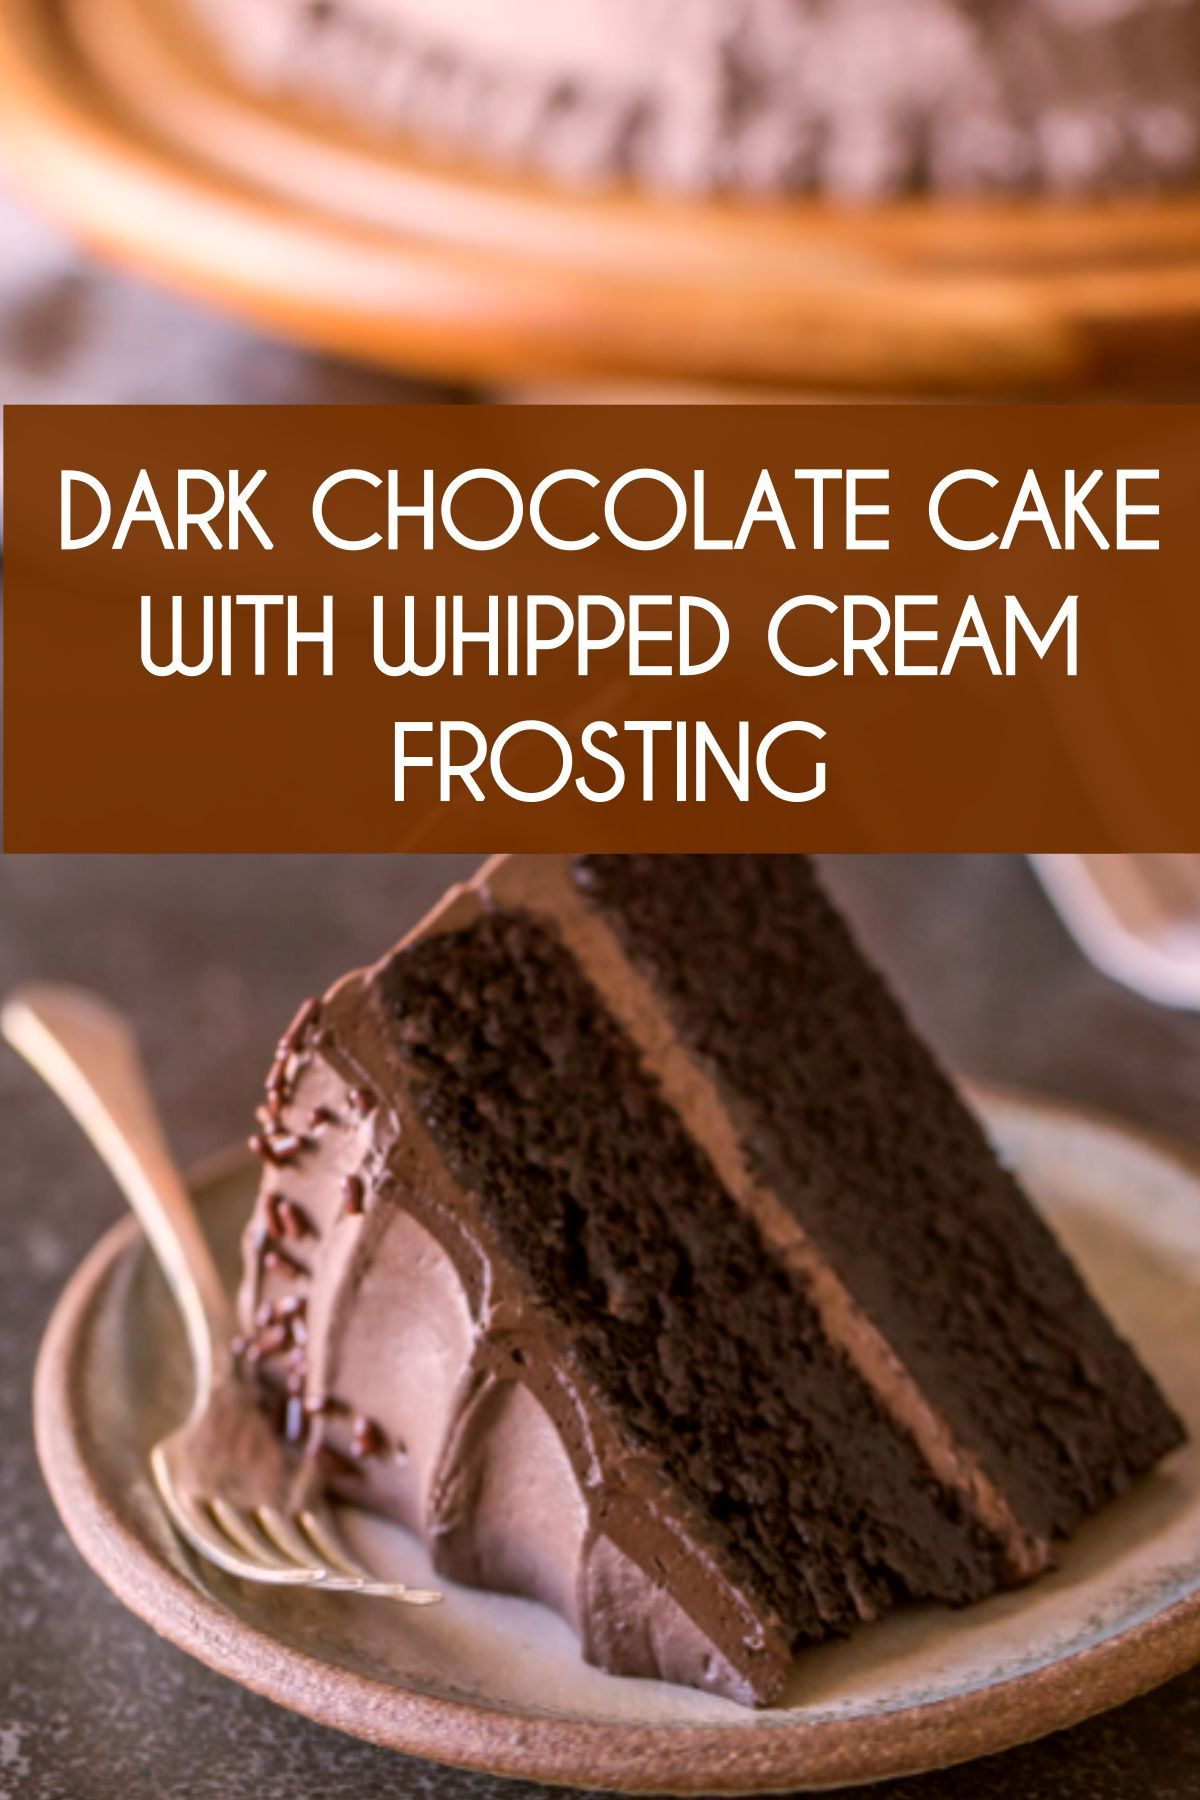 Chocolate Cake Recipe With Cocoa Powder And Buttermilk In 2020 Dark Chocolate Cakes Chocolate Cake Recipe Easy Chocolate Cake Recipe Moist